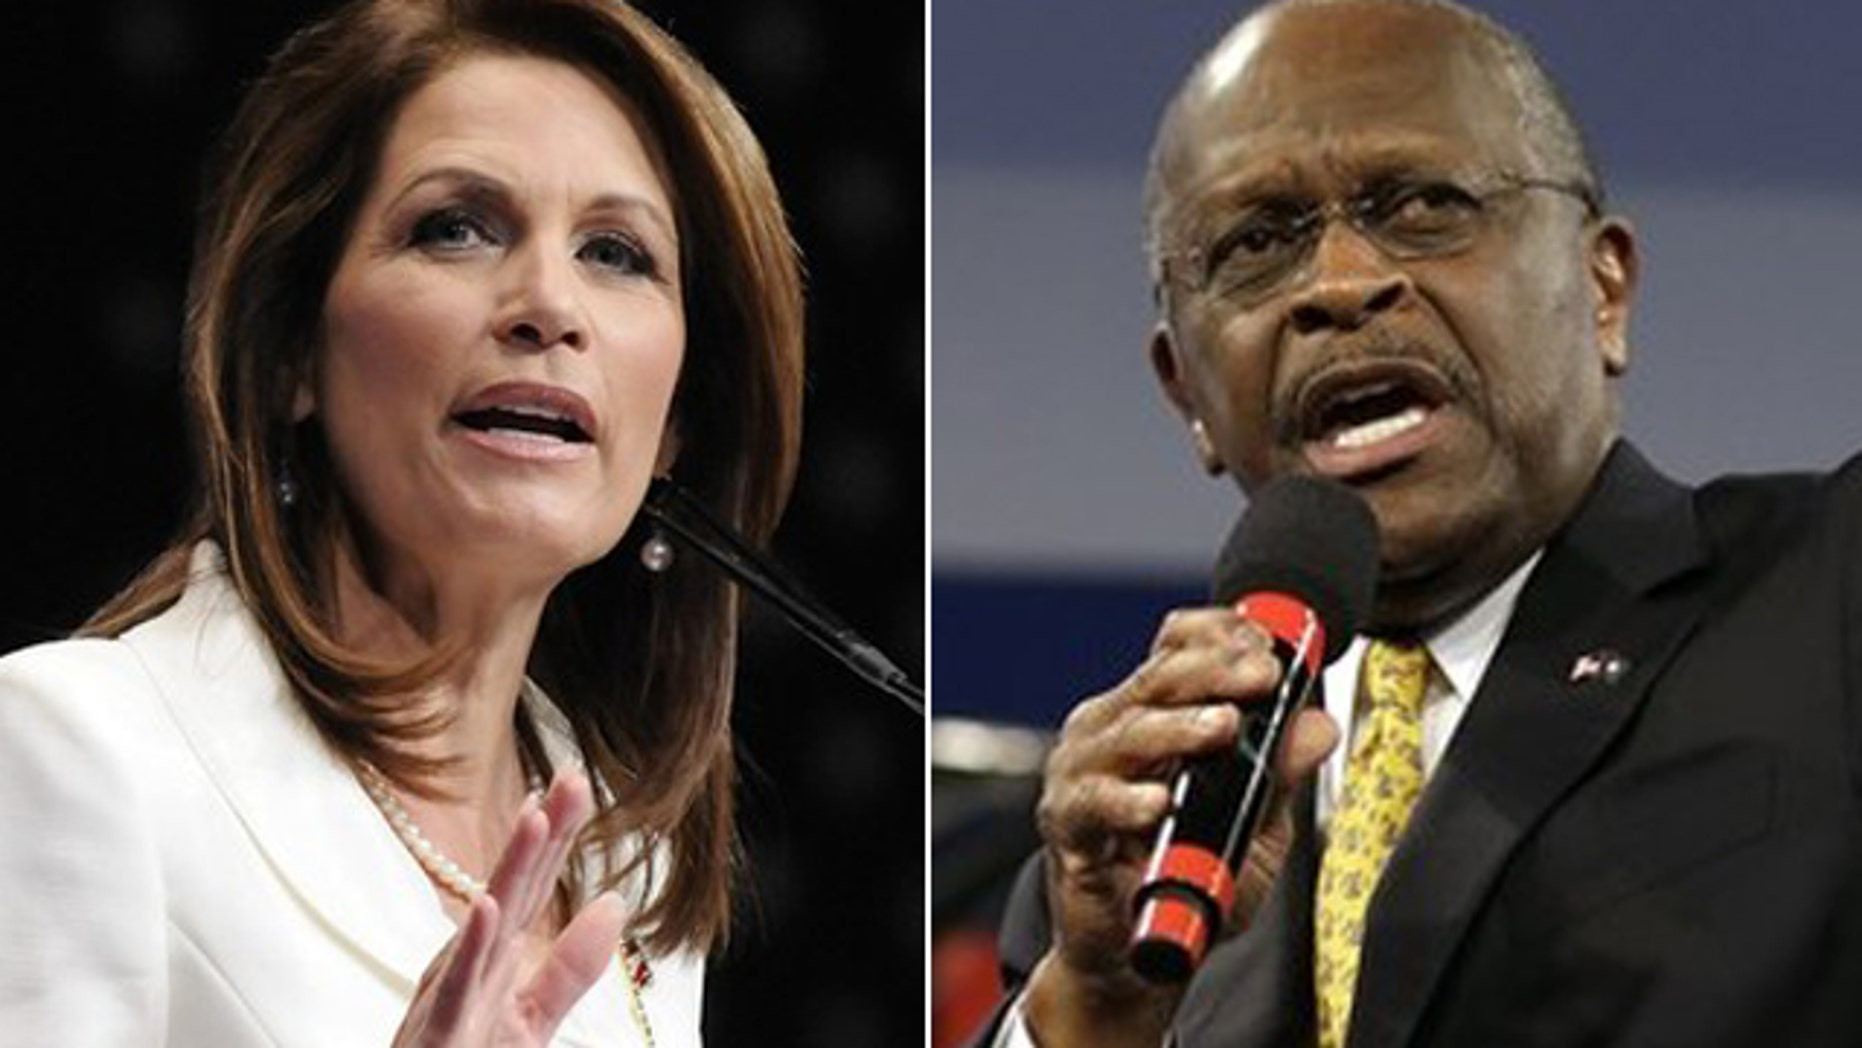 This photo shows Michele Bachmann and Herman Cain.